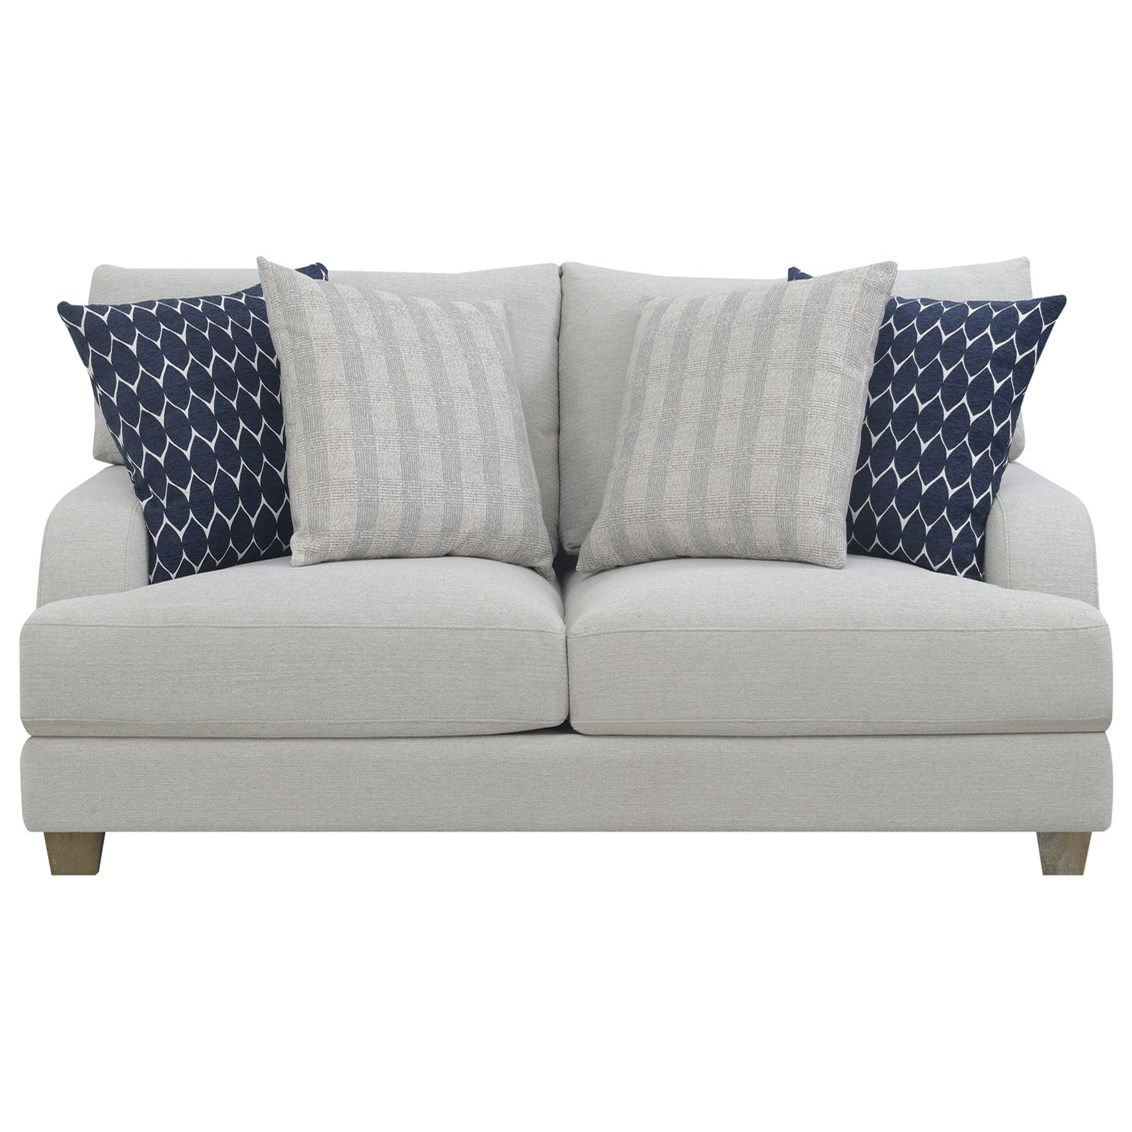 Laney Loveseat by Emerald at Northeast Factory Direct